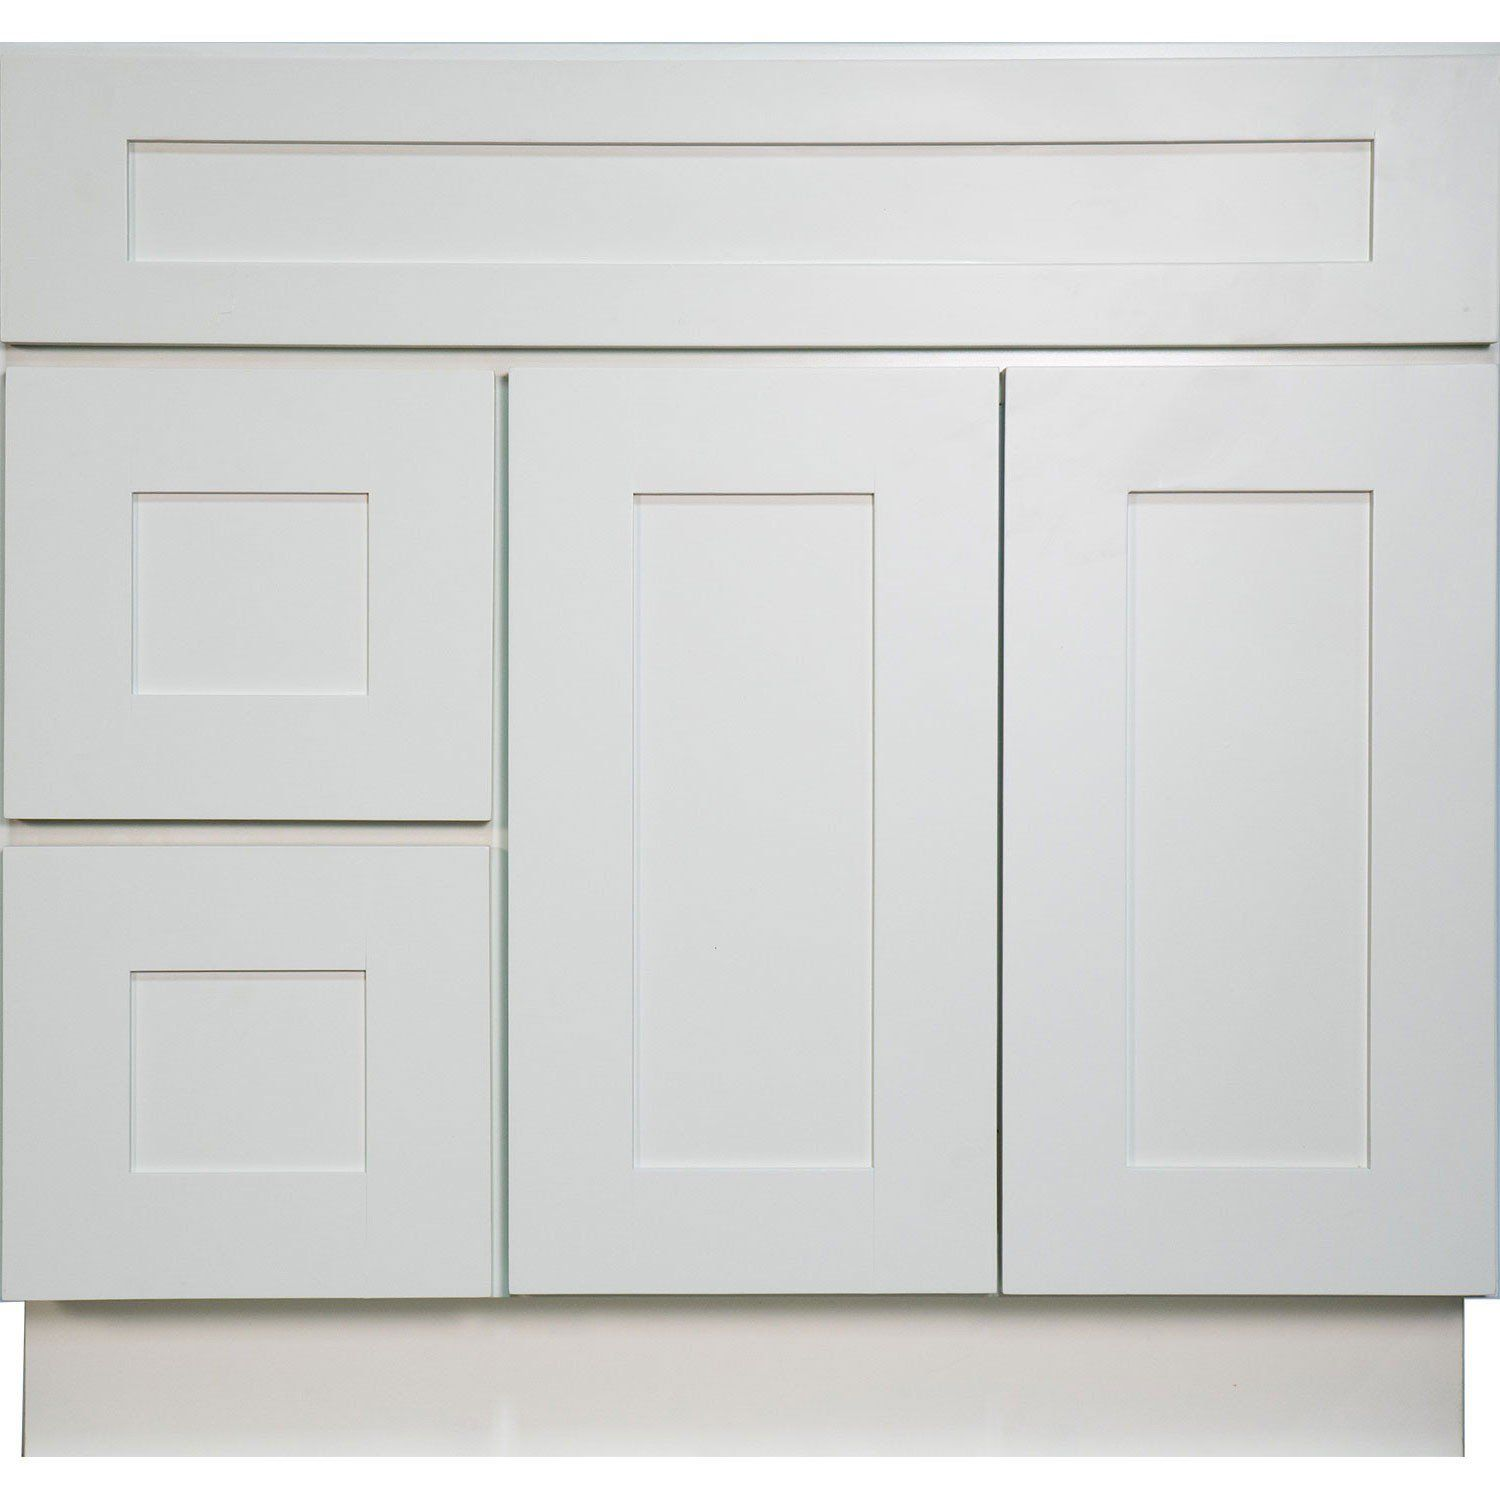 white shaker bathroom vanity. 36 Inch Bathroom Vanity Single Sink Cabinet In White Shaker With Soft Close Doors And Drawers (Left) - Everyday Cabinets E